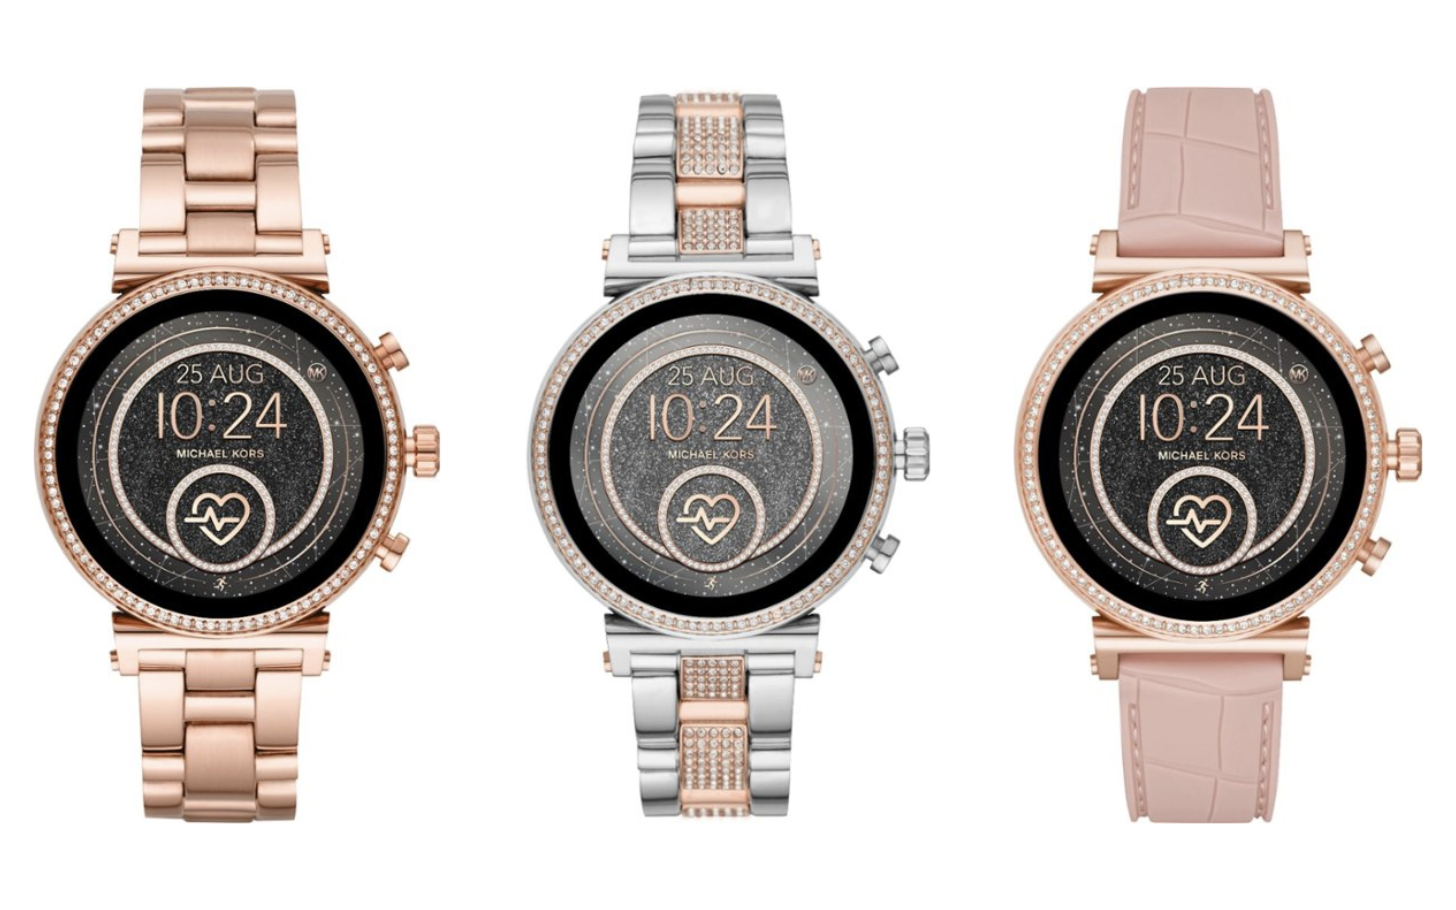 Michael Kors Access Sofie watches on sale for as low as $199 (up to $166 off)